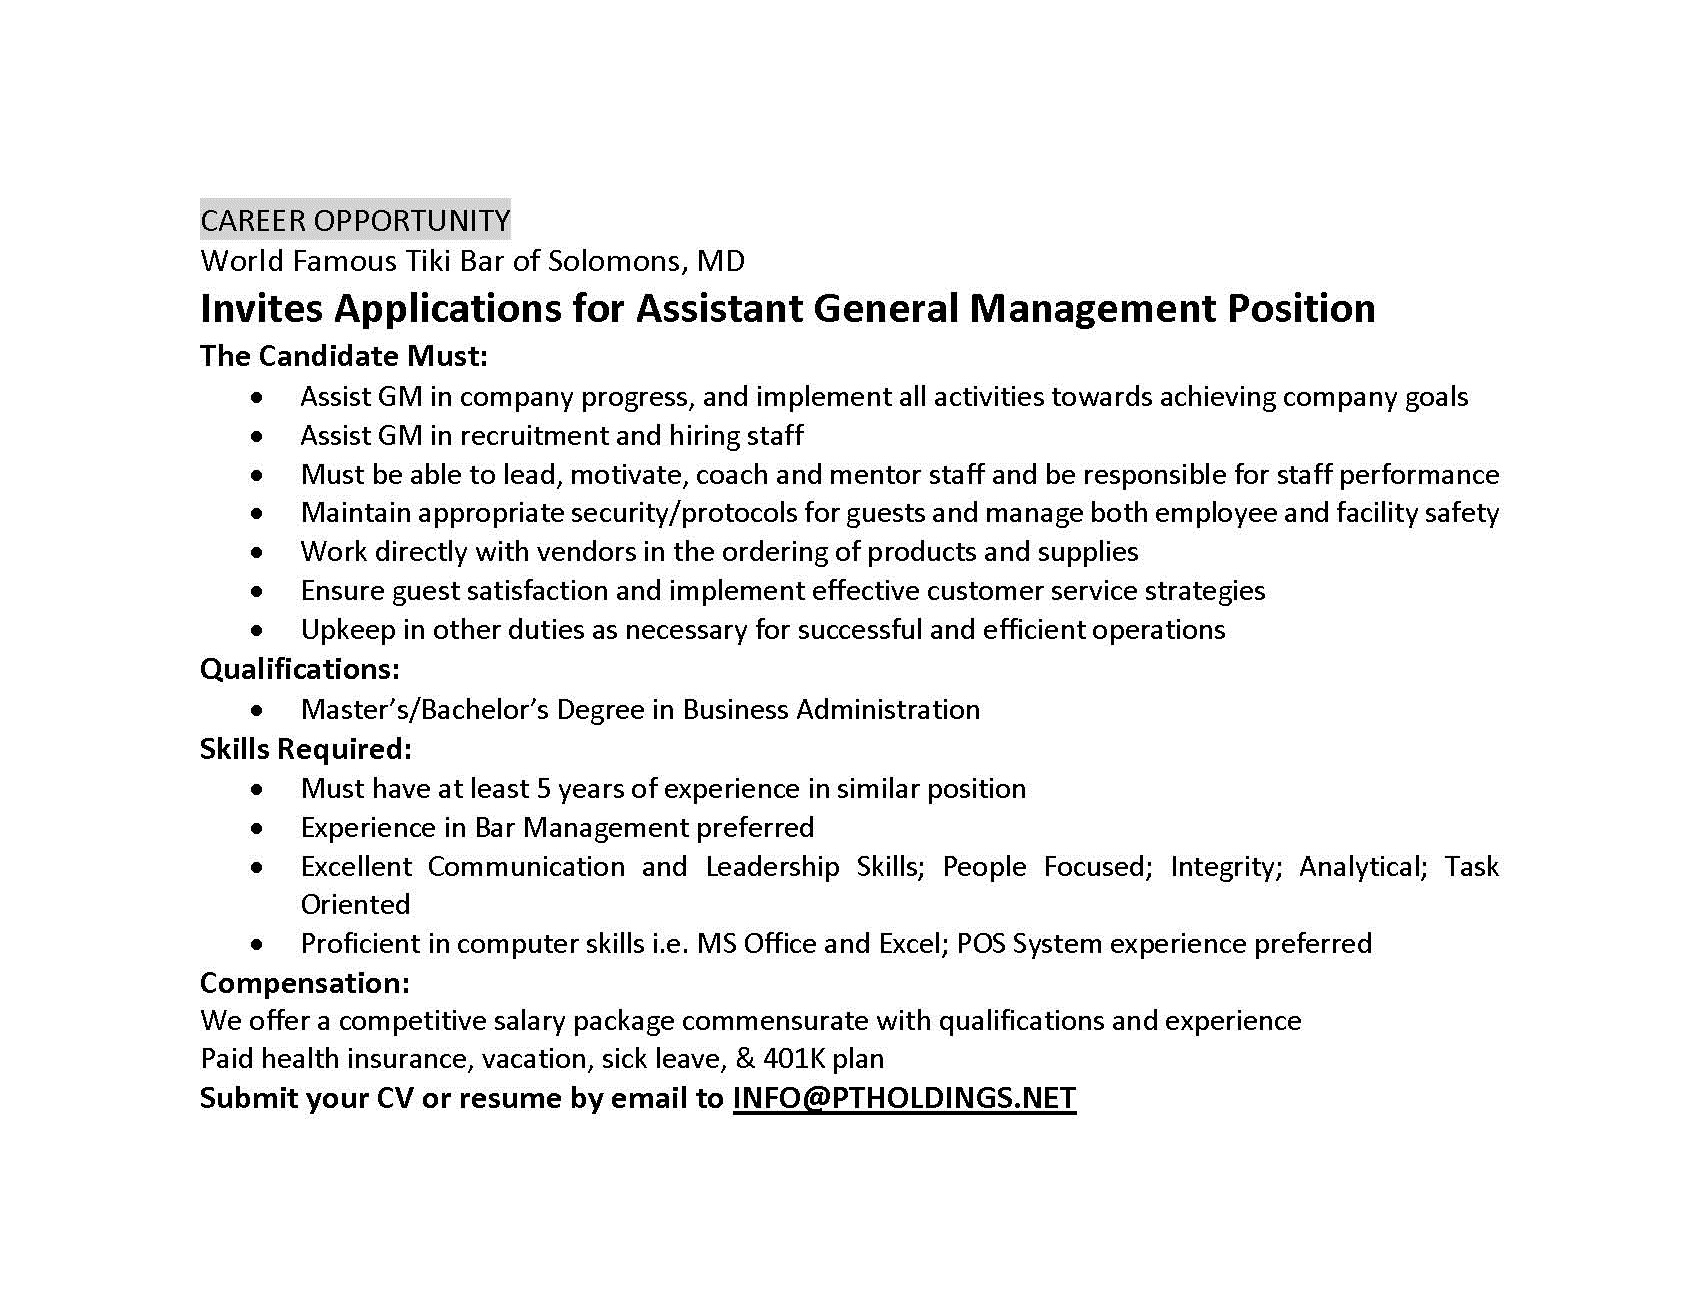 career-opportunity-agm-position-11-28-16